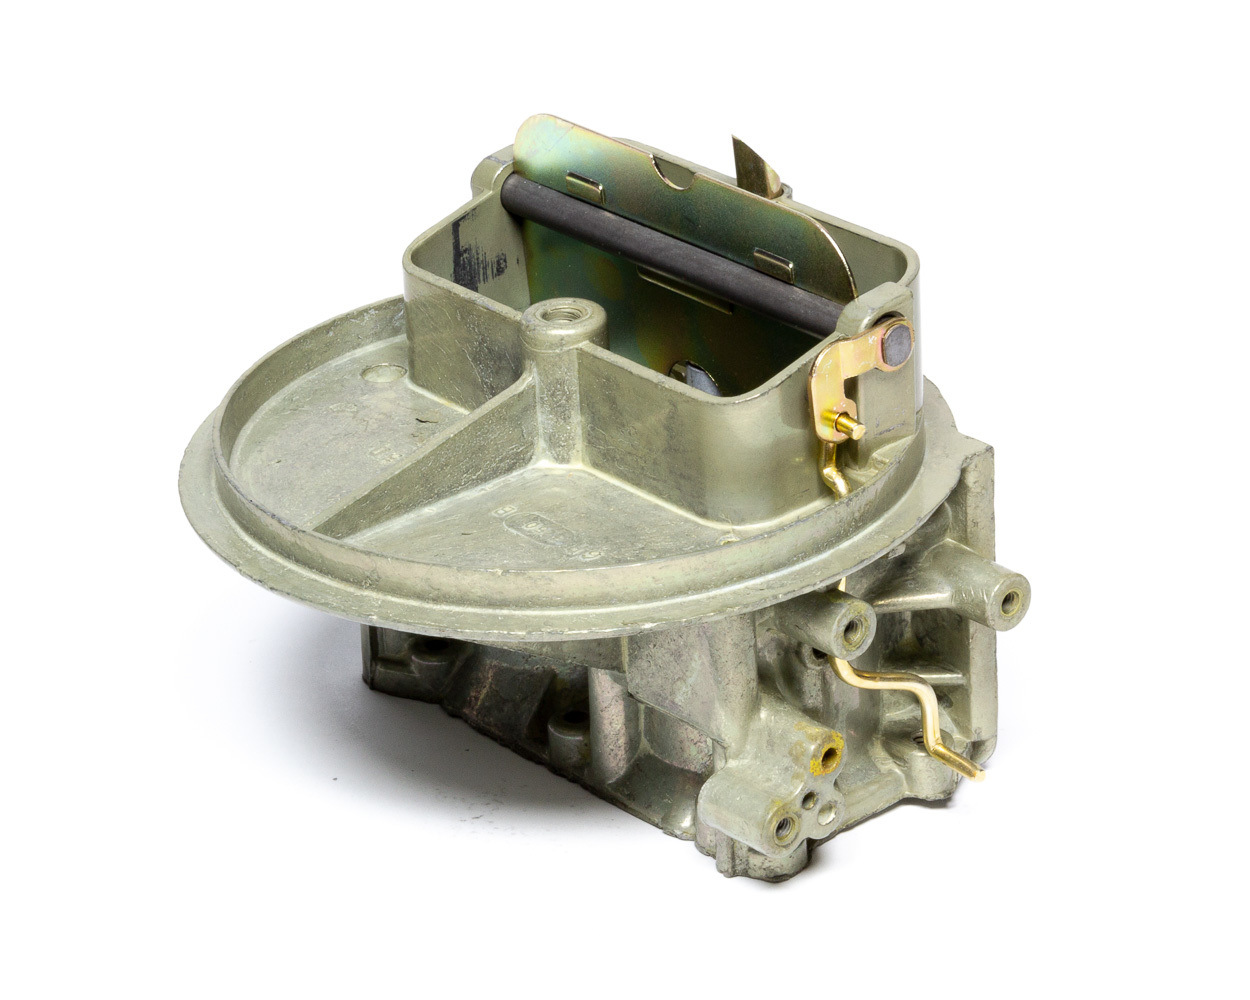 Holley 134-334 Carburetor Main Body, Replacement, 500 CFM, Aluminum, Chromate, Holley Performance Model 2300 Carburetor, Kit